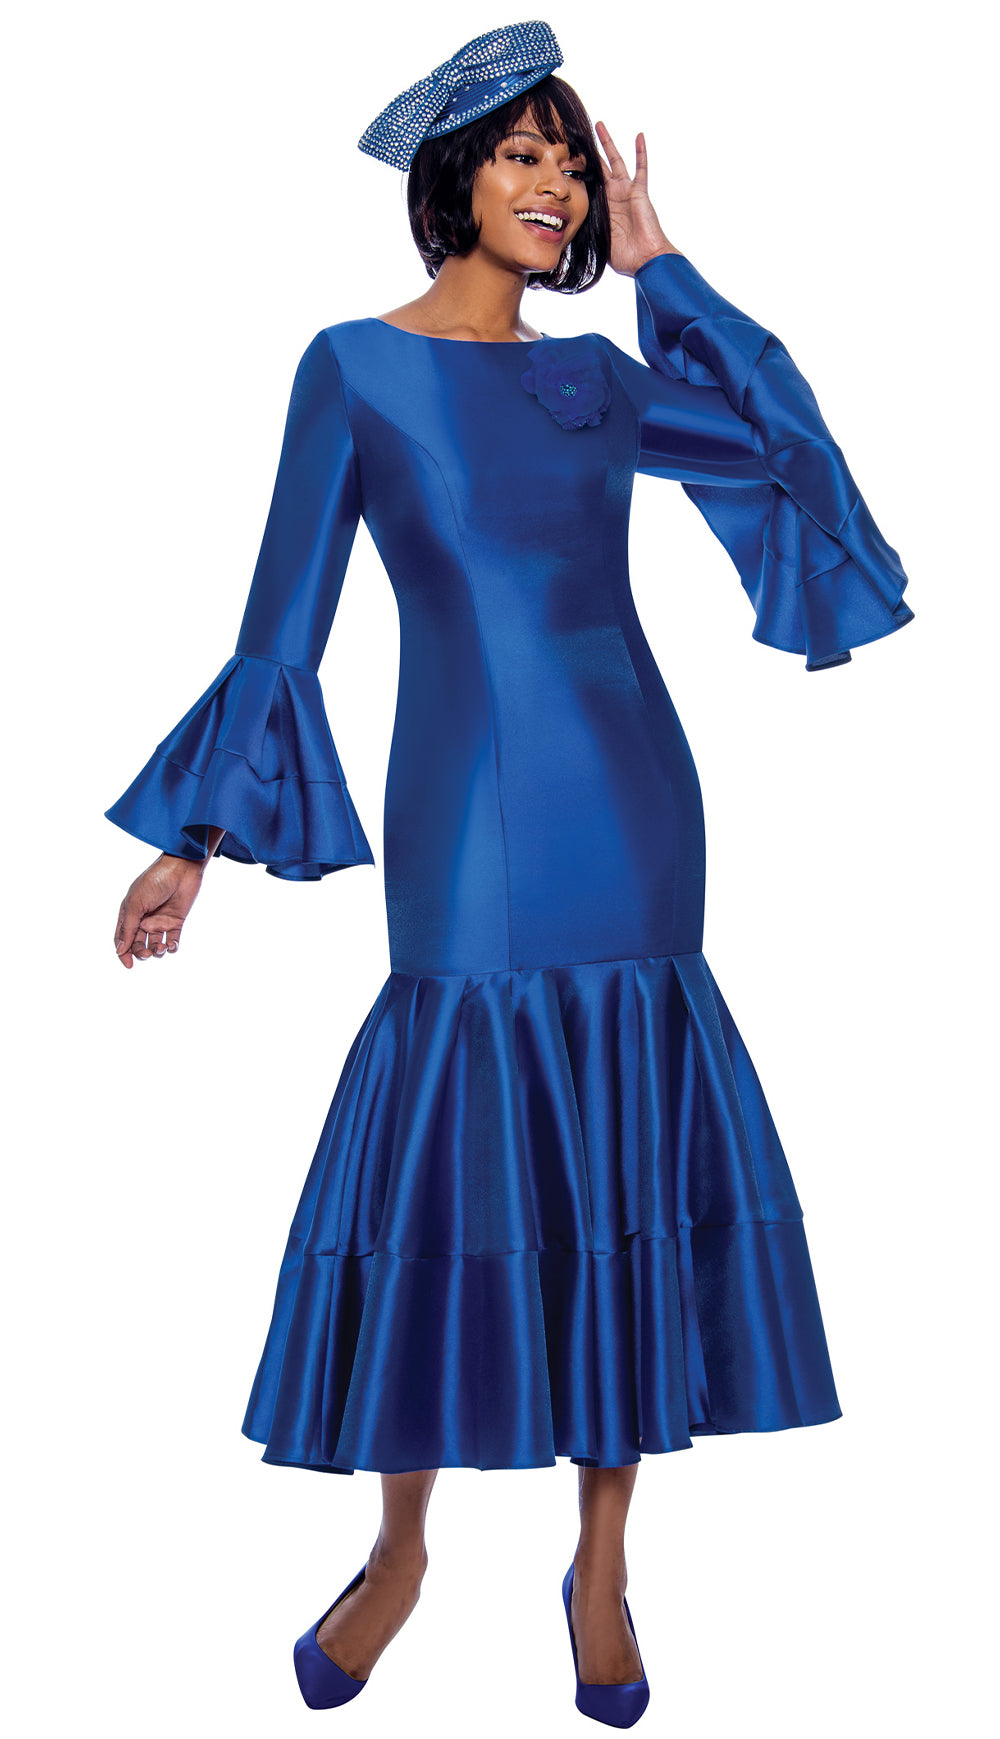 Terramina Dress 7764-Royal - Church Suits For Less